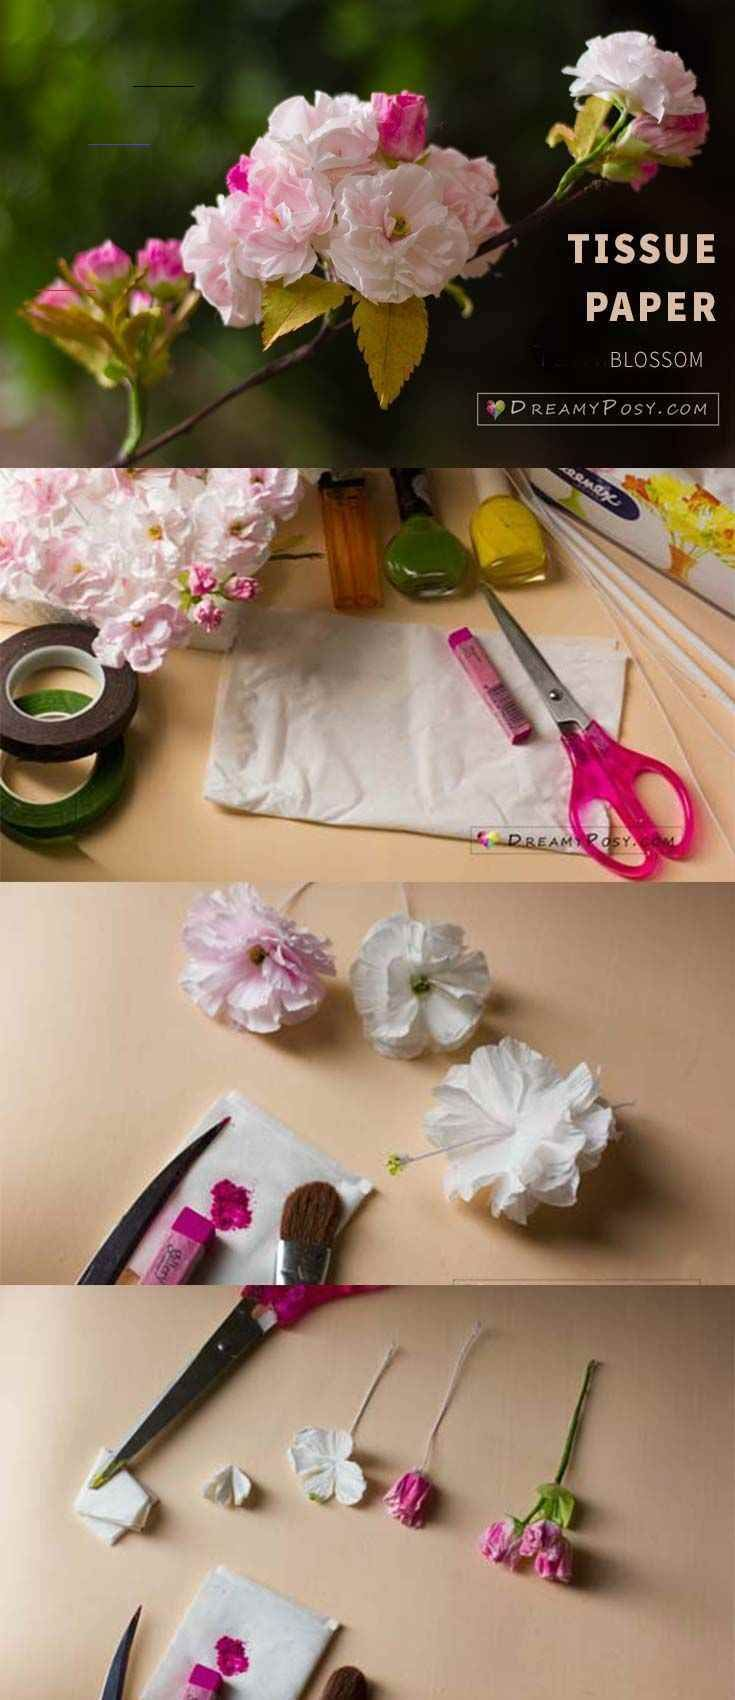 How To Make Paper Cherry Blossom From Facial Tissue So Easy Paper Cherry Blossom Free Tuto In 2020 Tissue Paper Flowers Paper Flower Tutorial Tissue Paper Flowers Diy